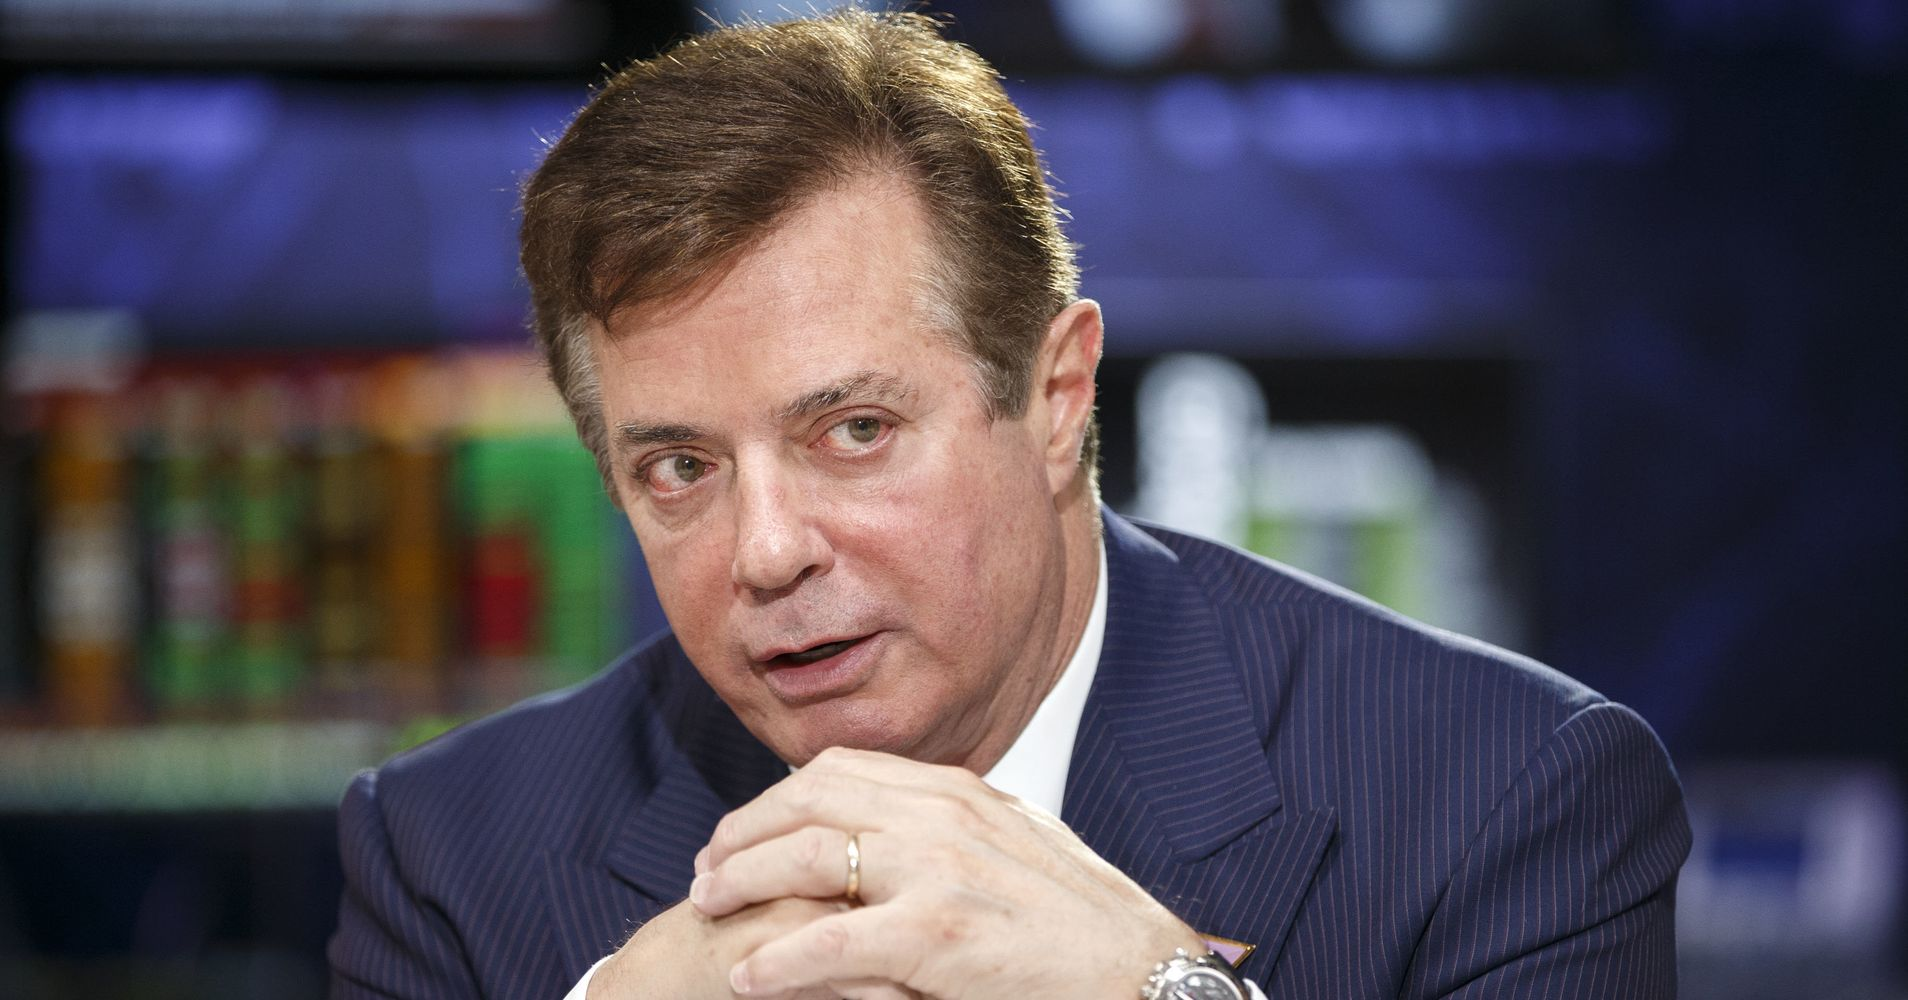 Let's Talk About Paul Manafort's $15,000 Ostrich Jacket For A Second